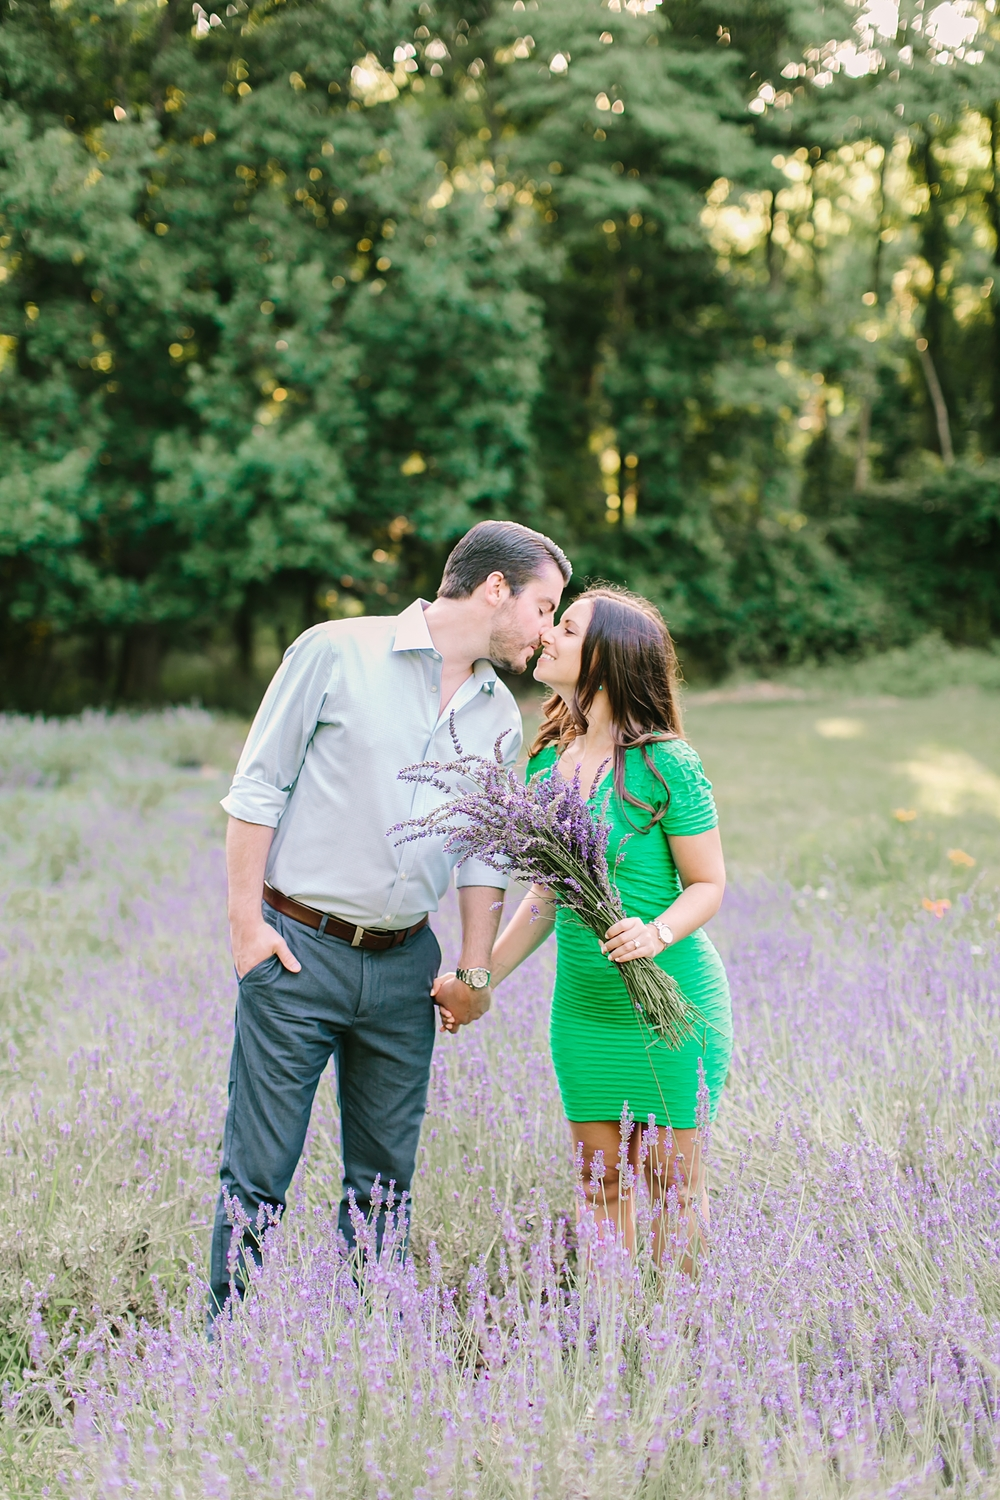 pleasant_valley_lavender_farm_nj_engagement_photos20.jpg